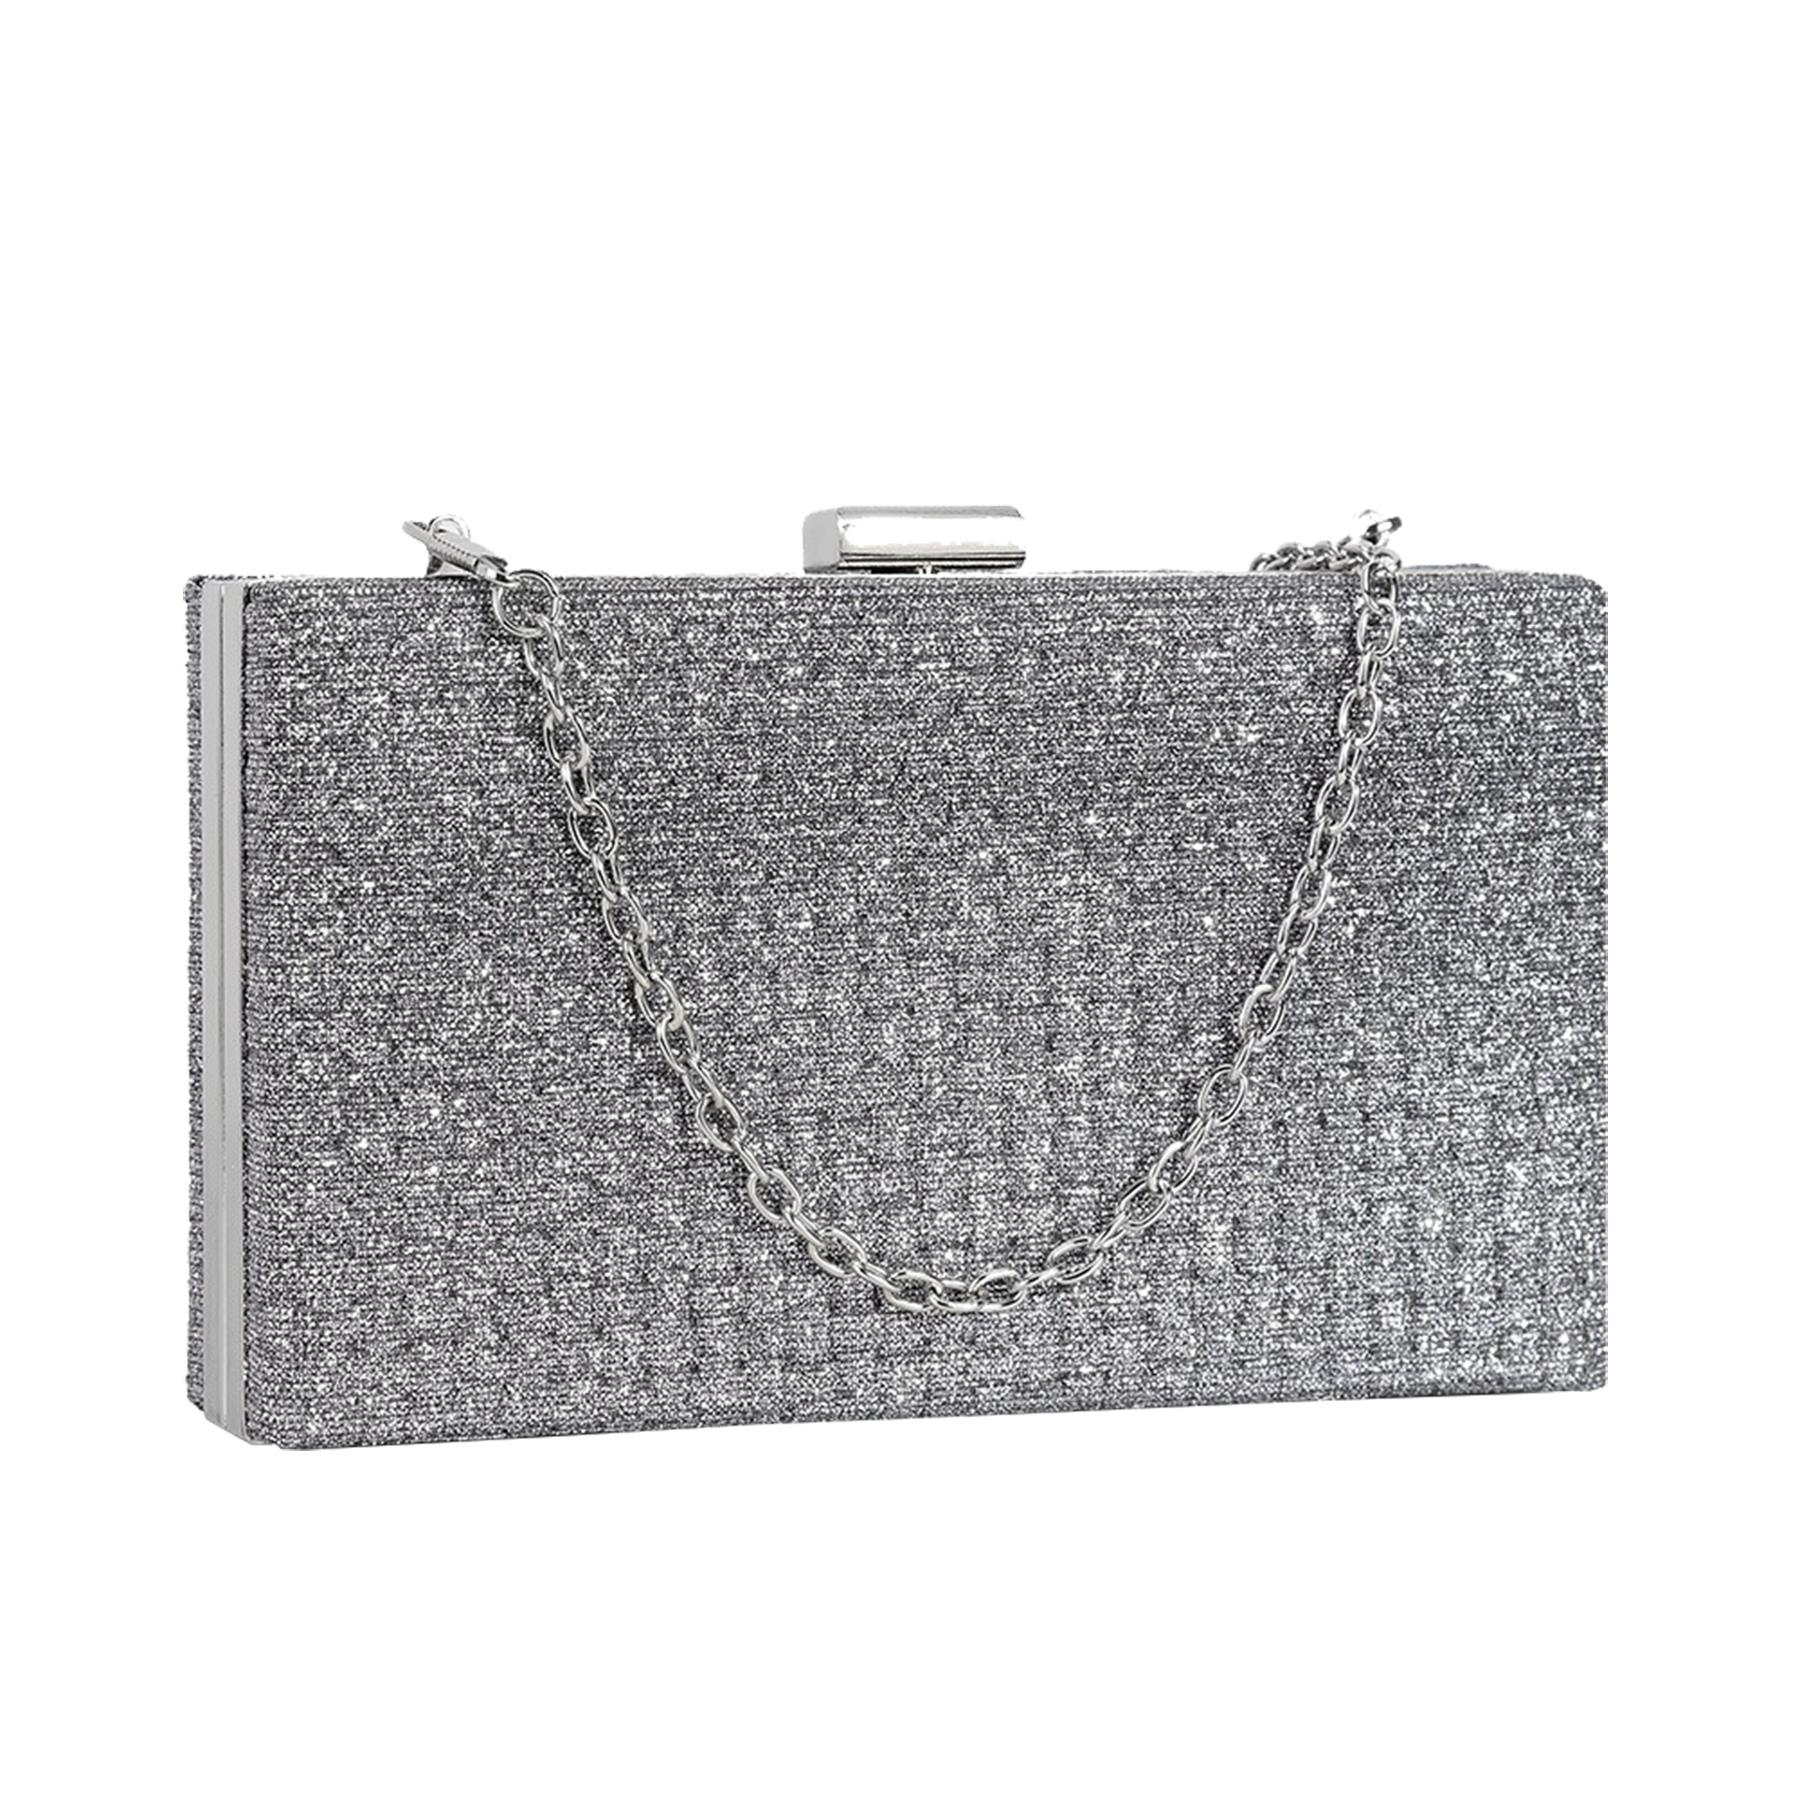 New-Sparkly-Shimmer-Glitter-Chain-Ladies-Hard-Compact-Bridal-Clutch-Bag-Purse thumbnail 9